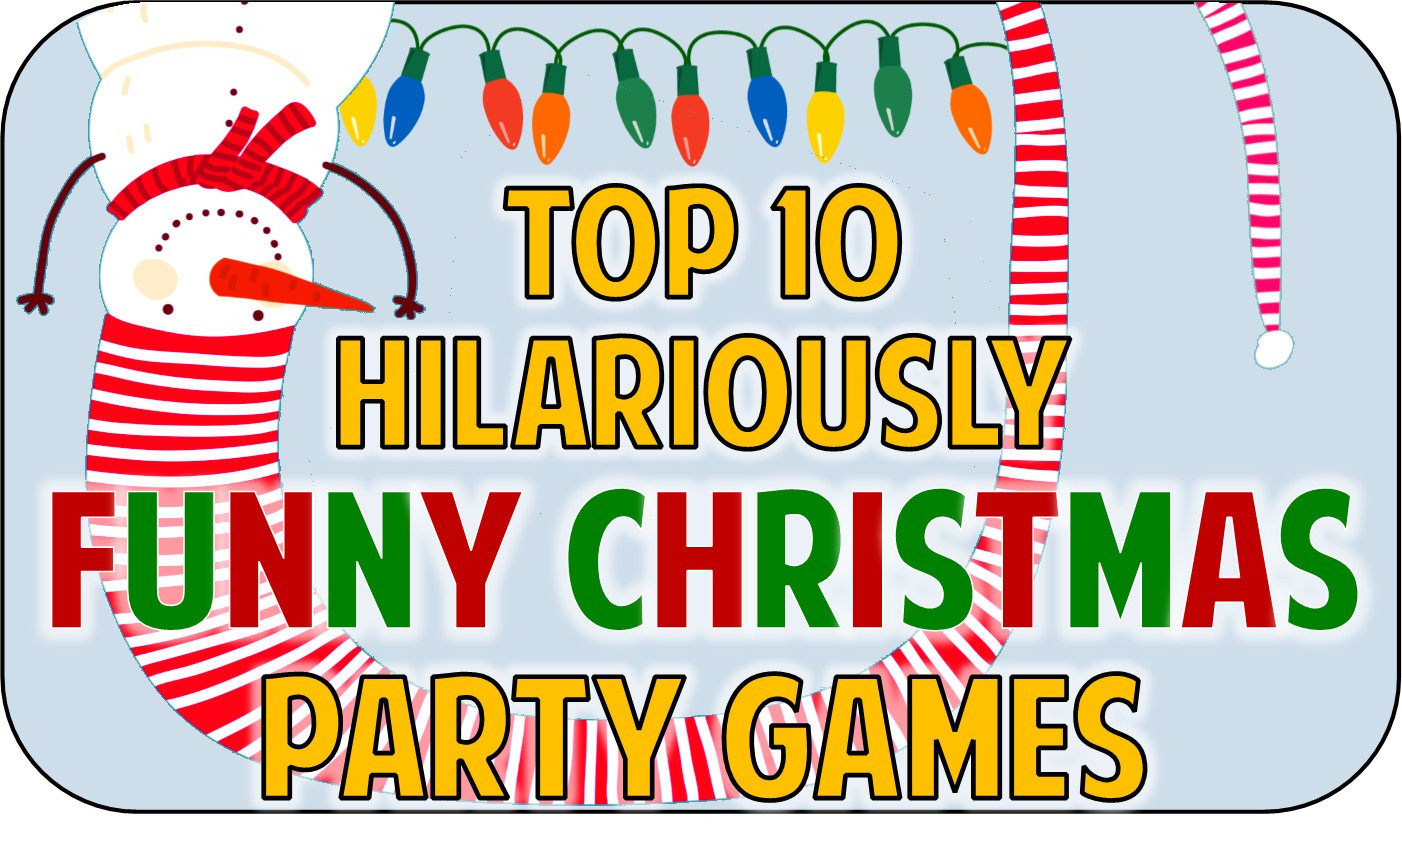 Christmas Party Themes Ideas For Adults  Christmas Party fice Games